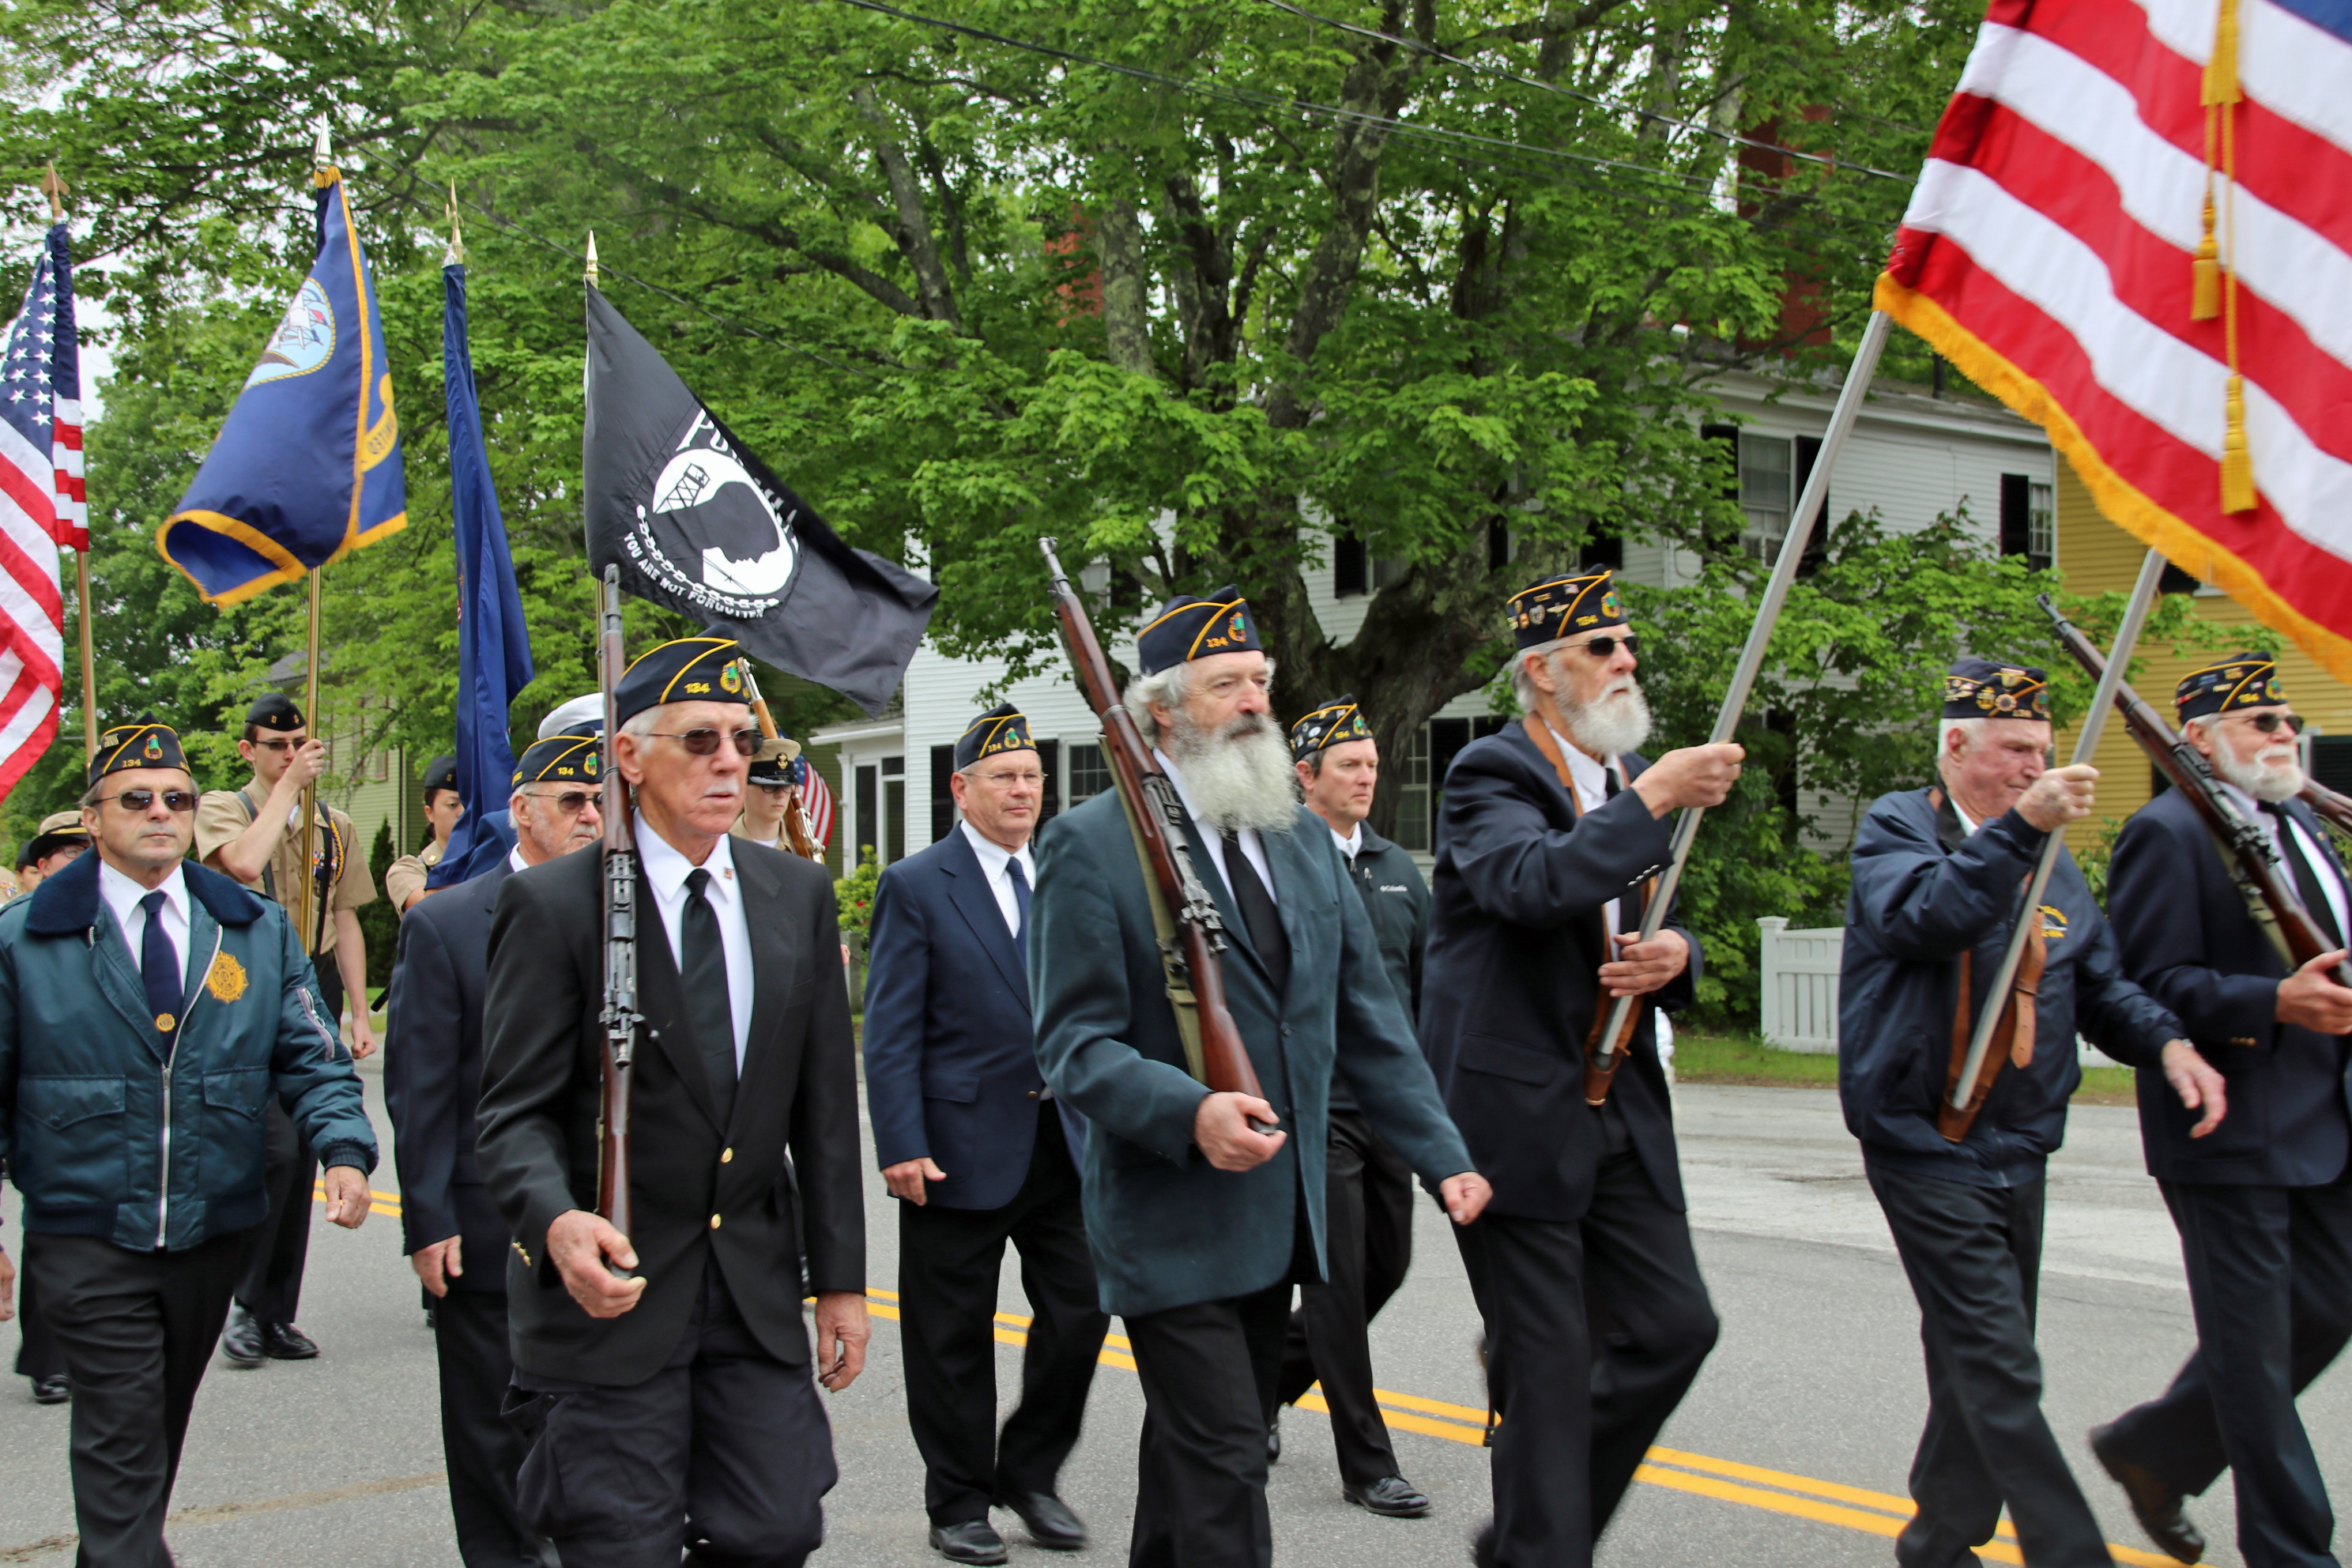 Veterans march in the Memorial Day parade this morning in Alfred. The parade and accompanying ceremonies are   hosted by Brown Emmons Post 134, American Legion, and alternate annually between Alfred and Waterboro. COURTESY PHOTO/Tammy Wells